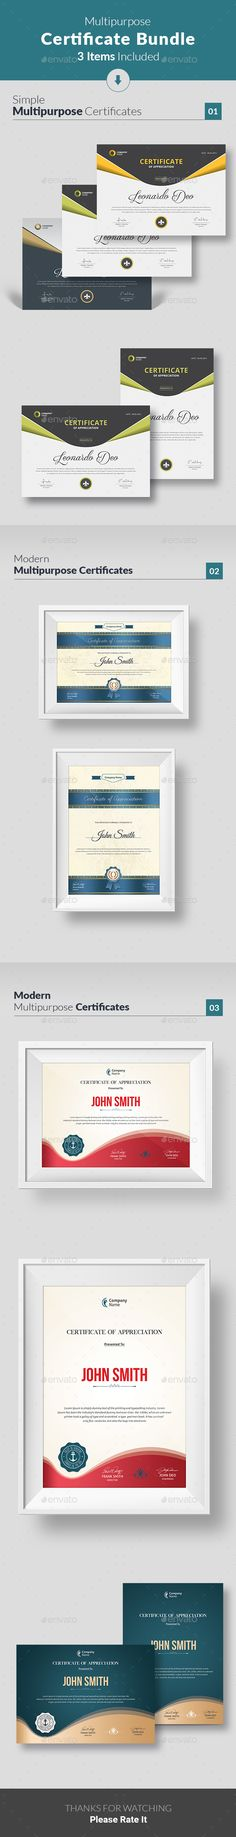 34 Best Certificate Templates PSD images in 2017